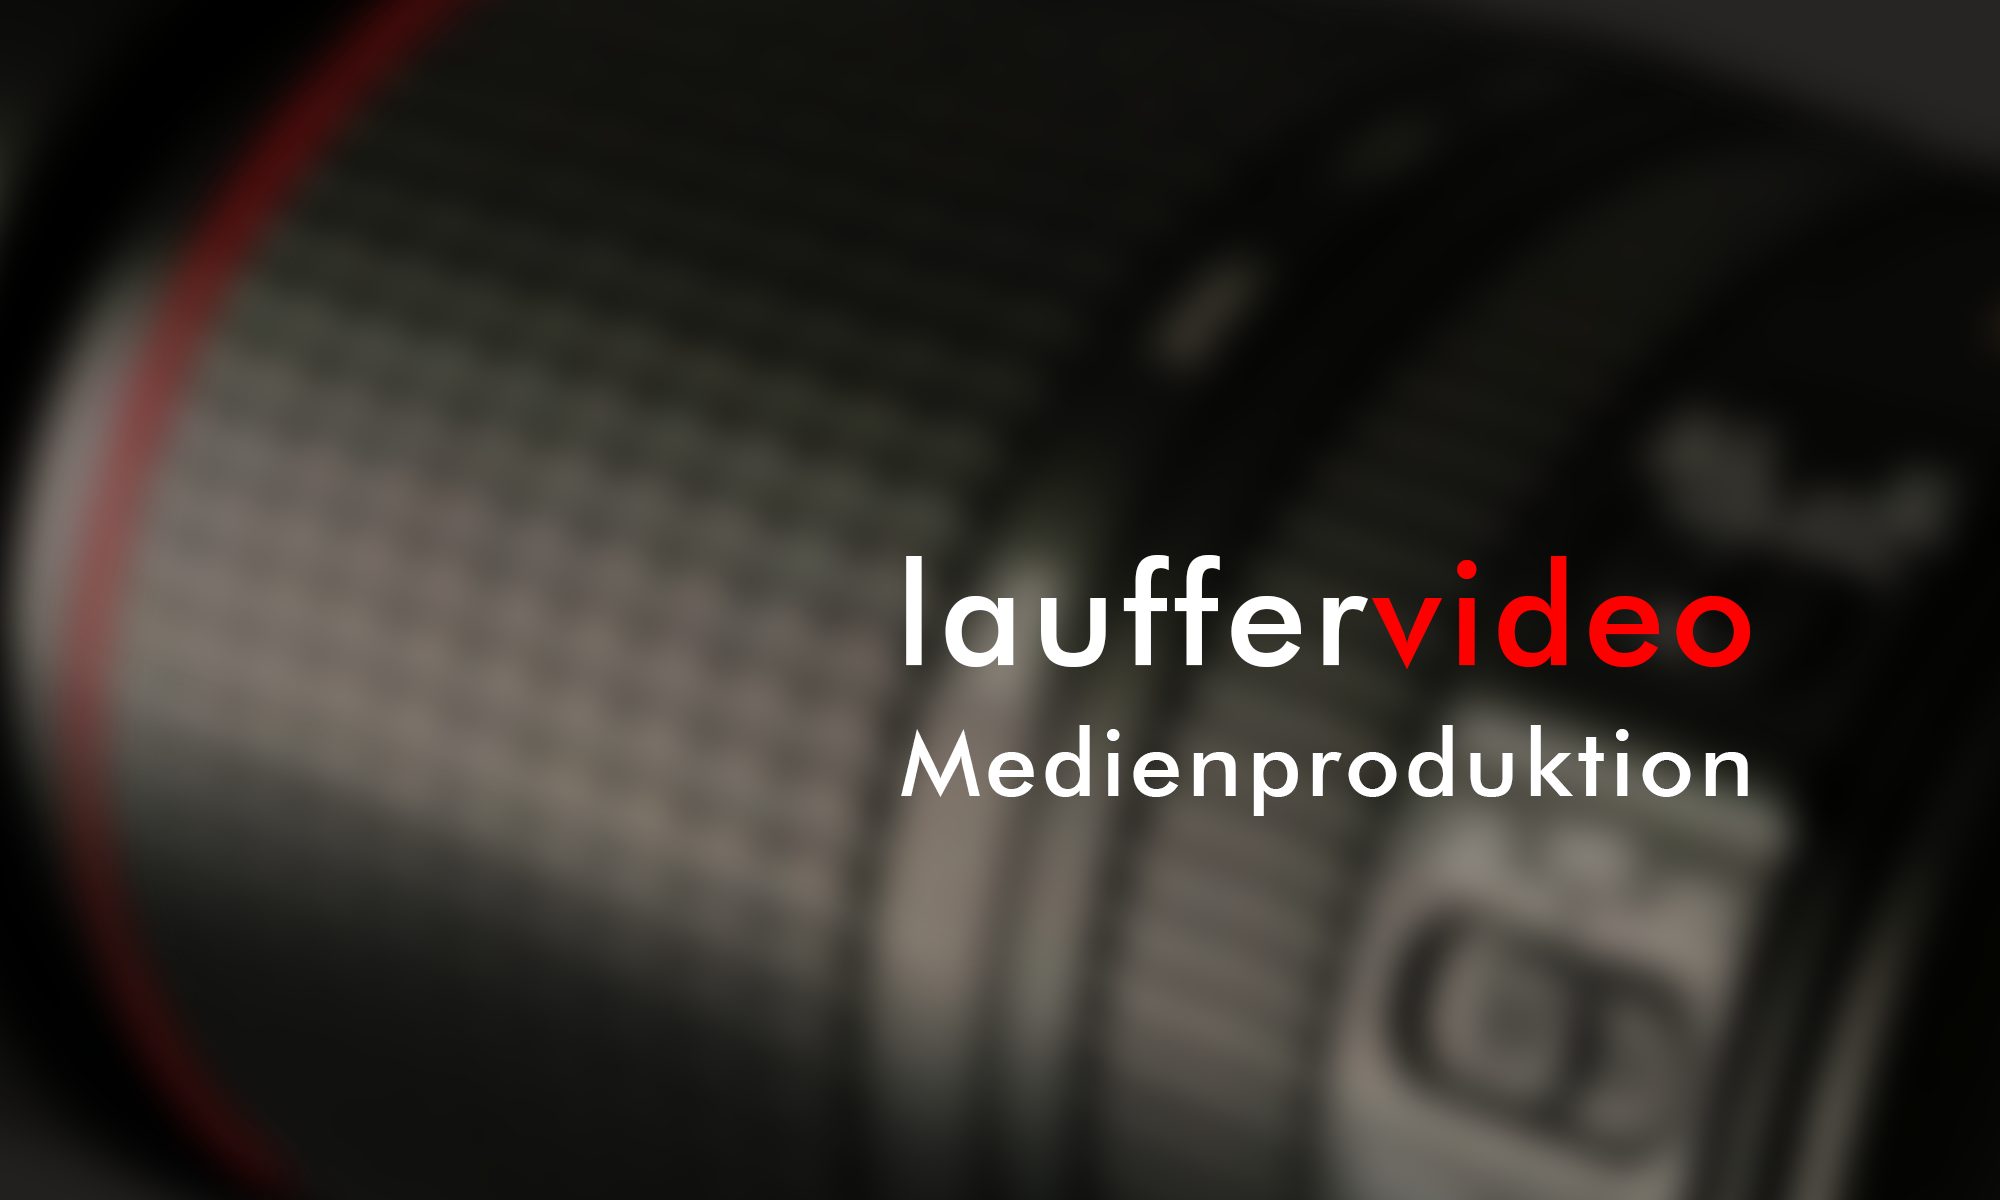 lauffervideo